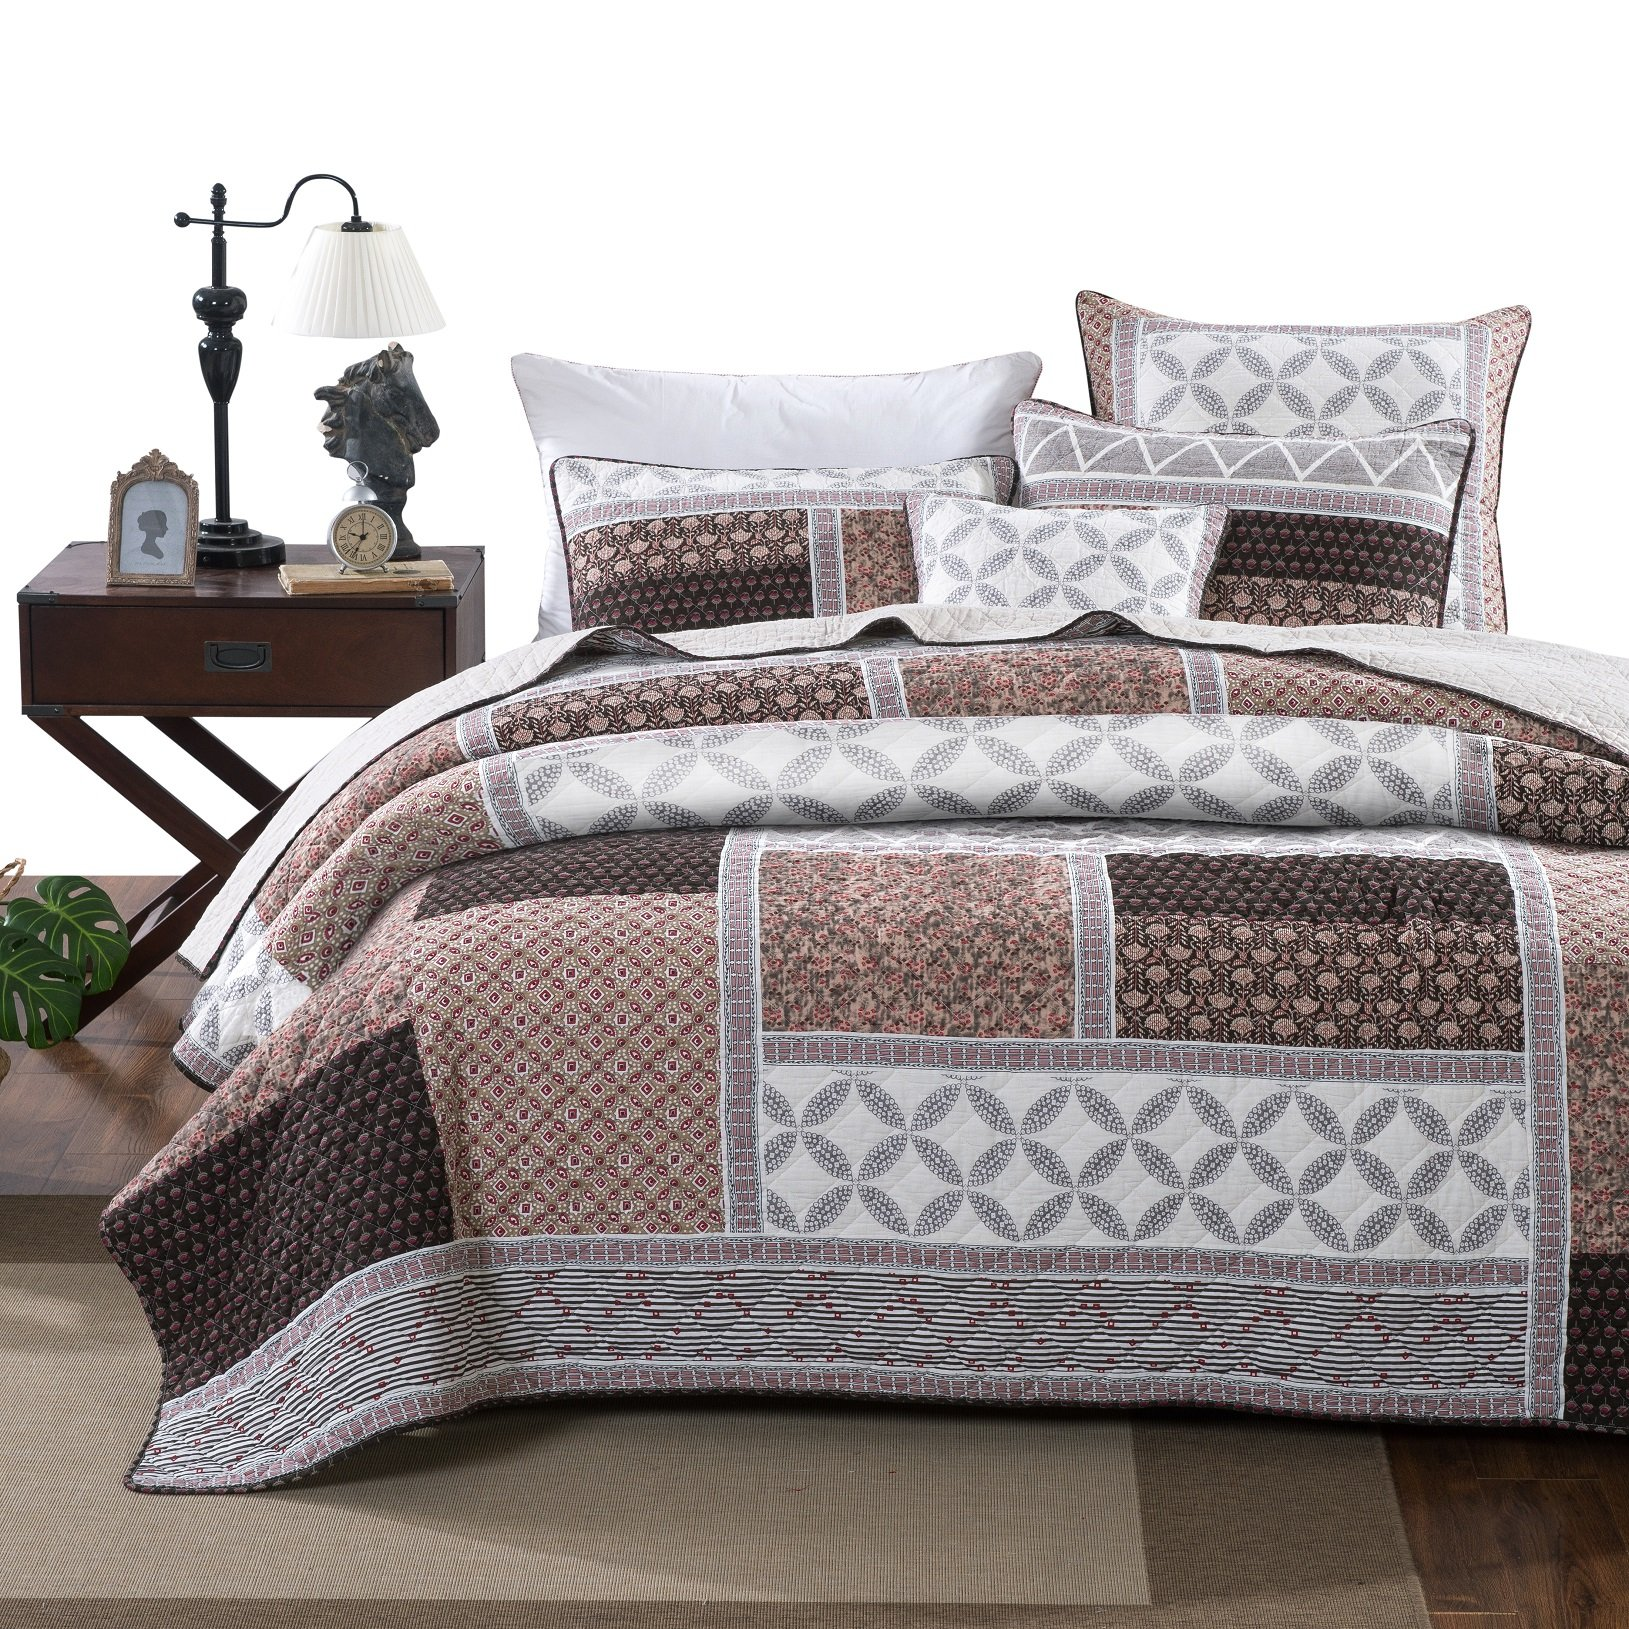 DaDa Bedding Cotton Patchwork Quilt - Geometric Neopolitan Roses Bedspread Set - Floral Bright Vibrant Multi Colorful - Pink Brown - Full - 3-Pieces